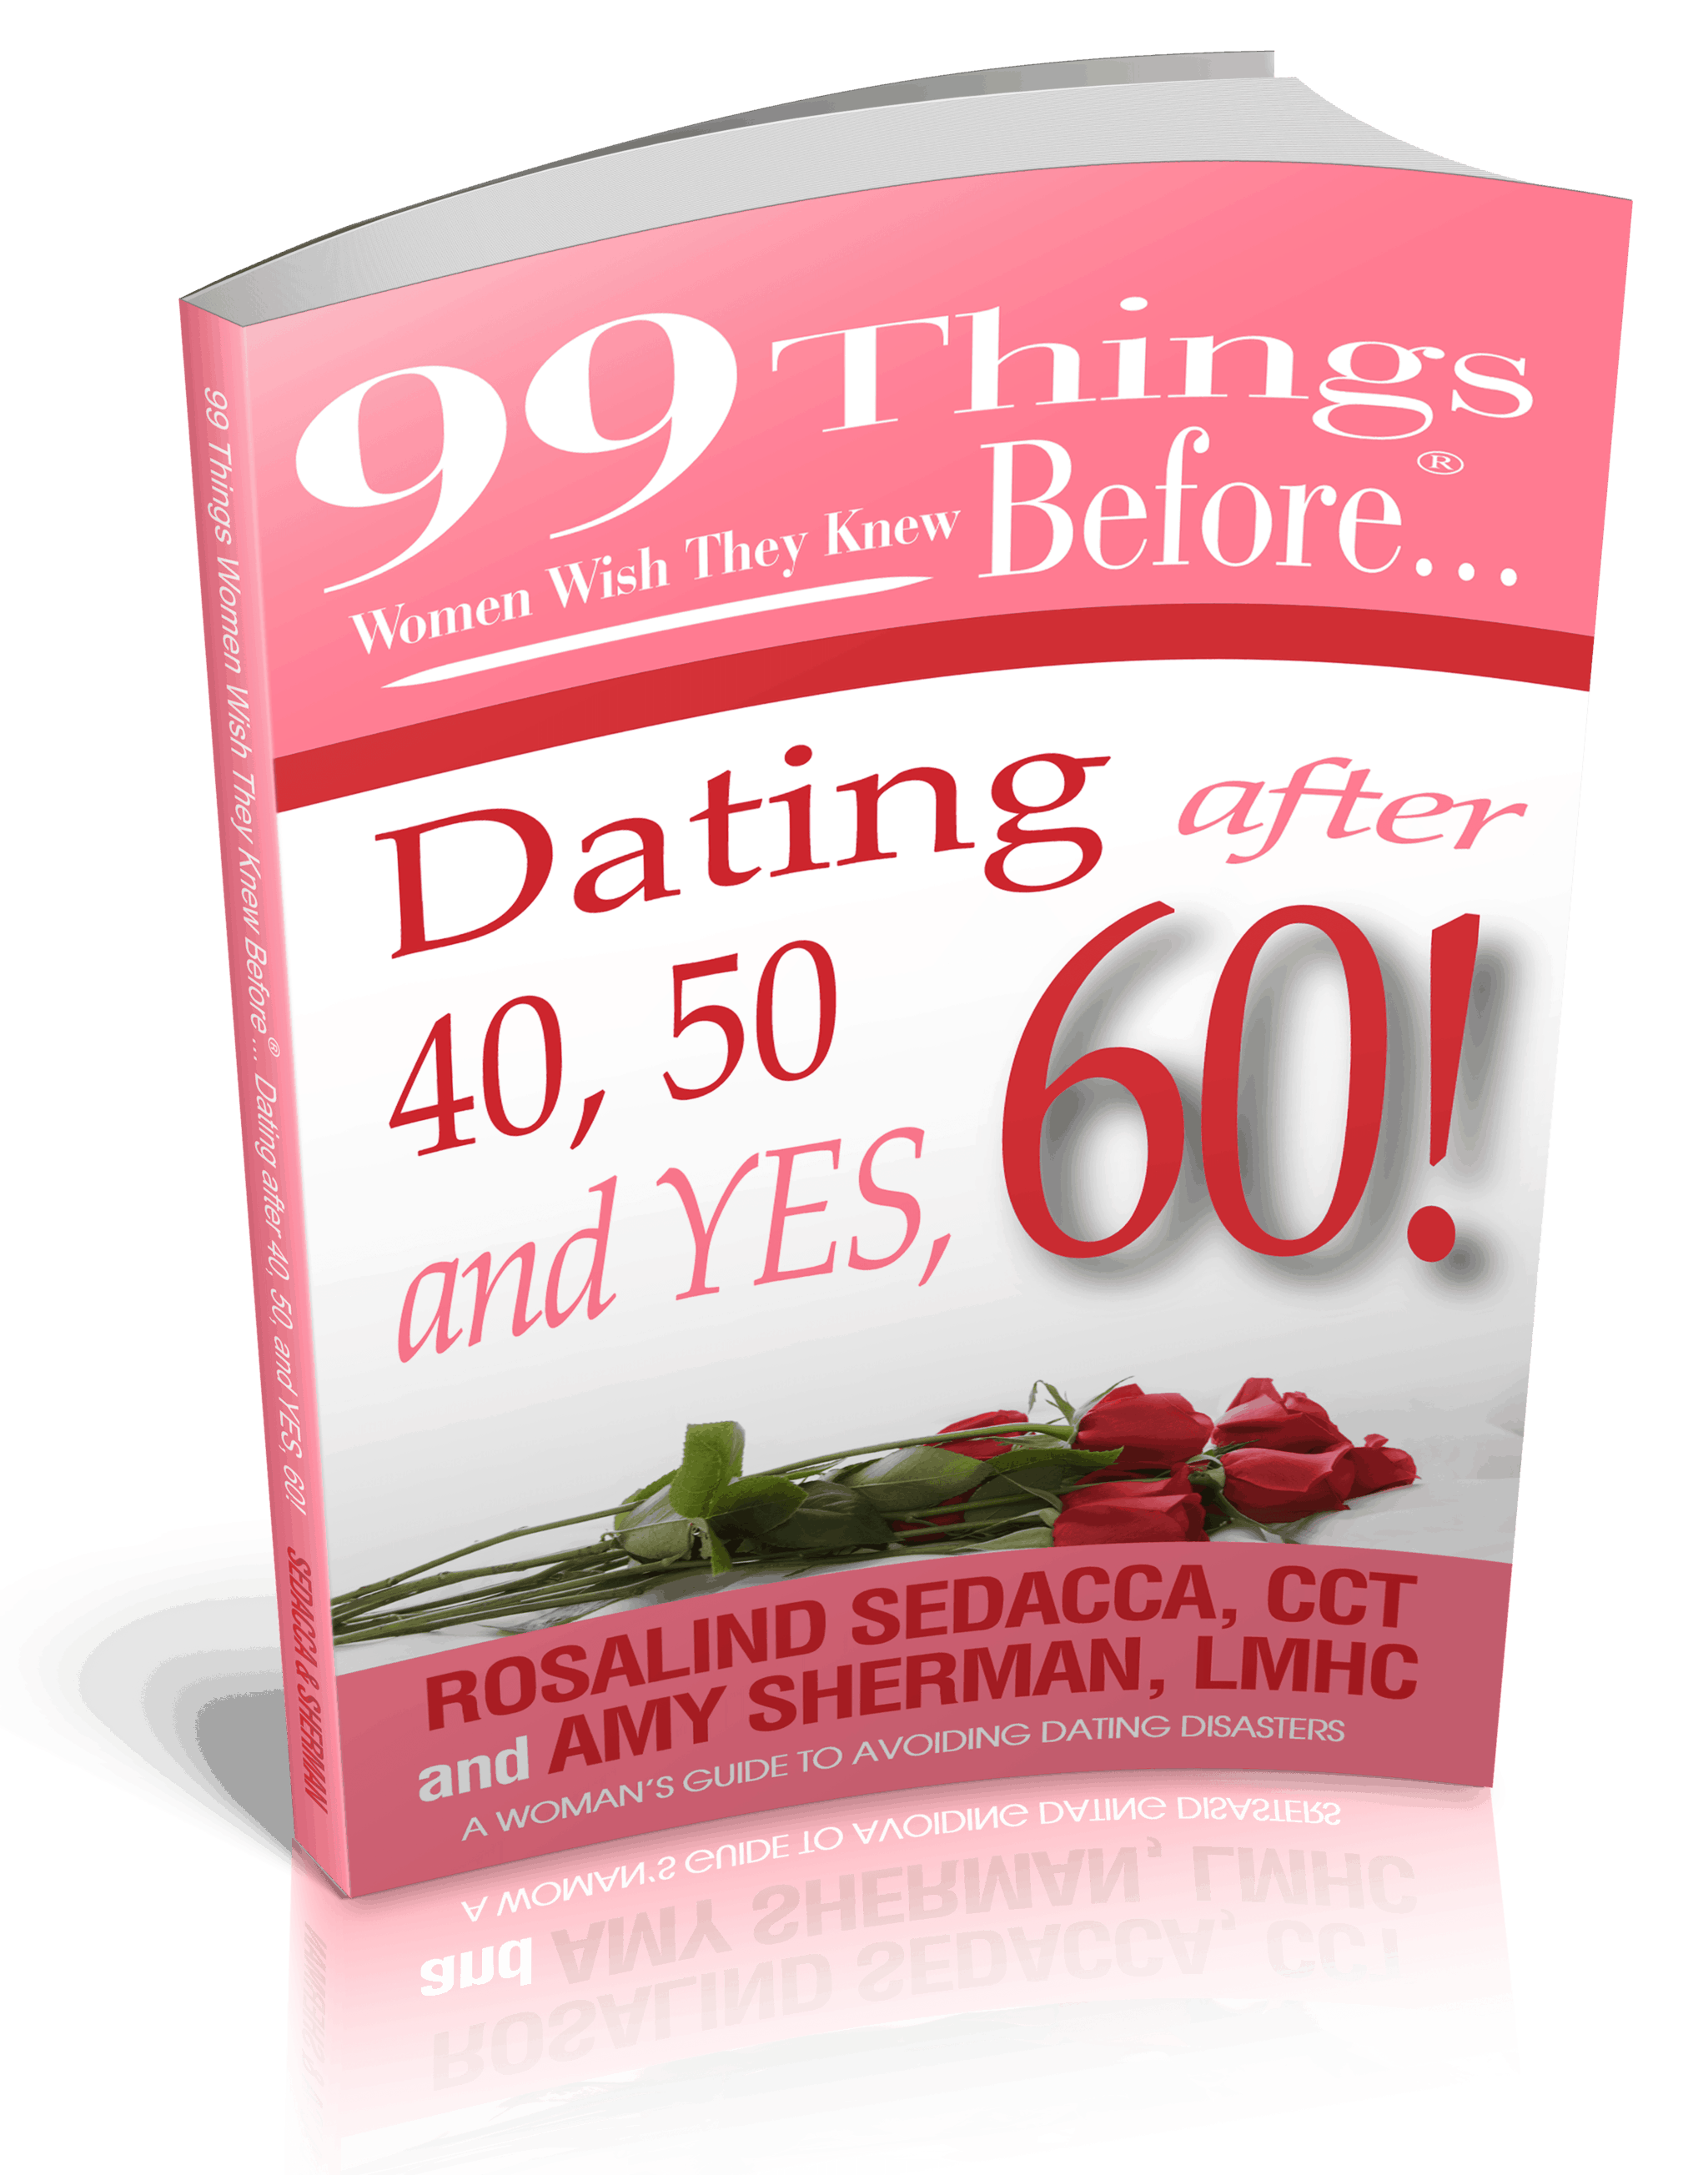 99 Things Women Wish They Knew Before Dating After 40, 50 & Yes, 60! by Rosalind Sedacca, CLC &a